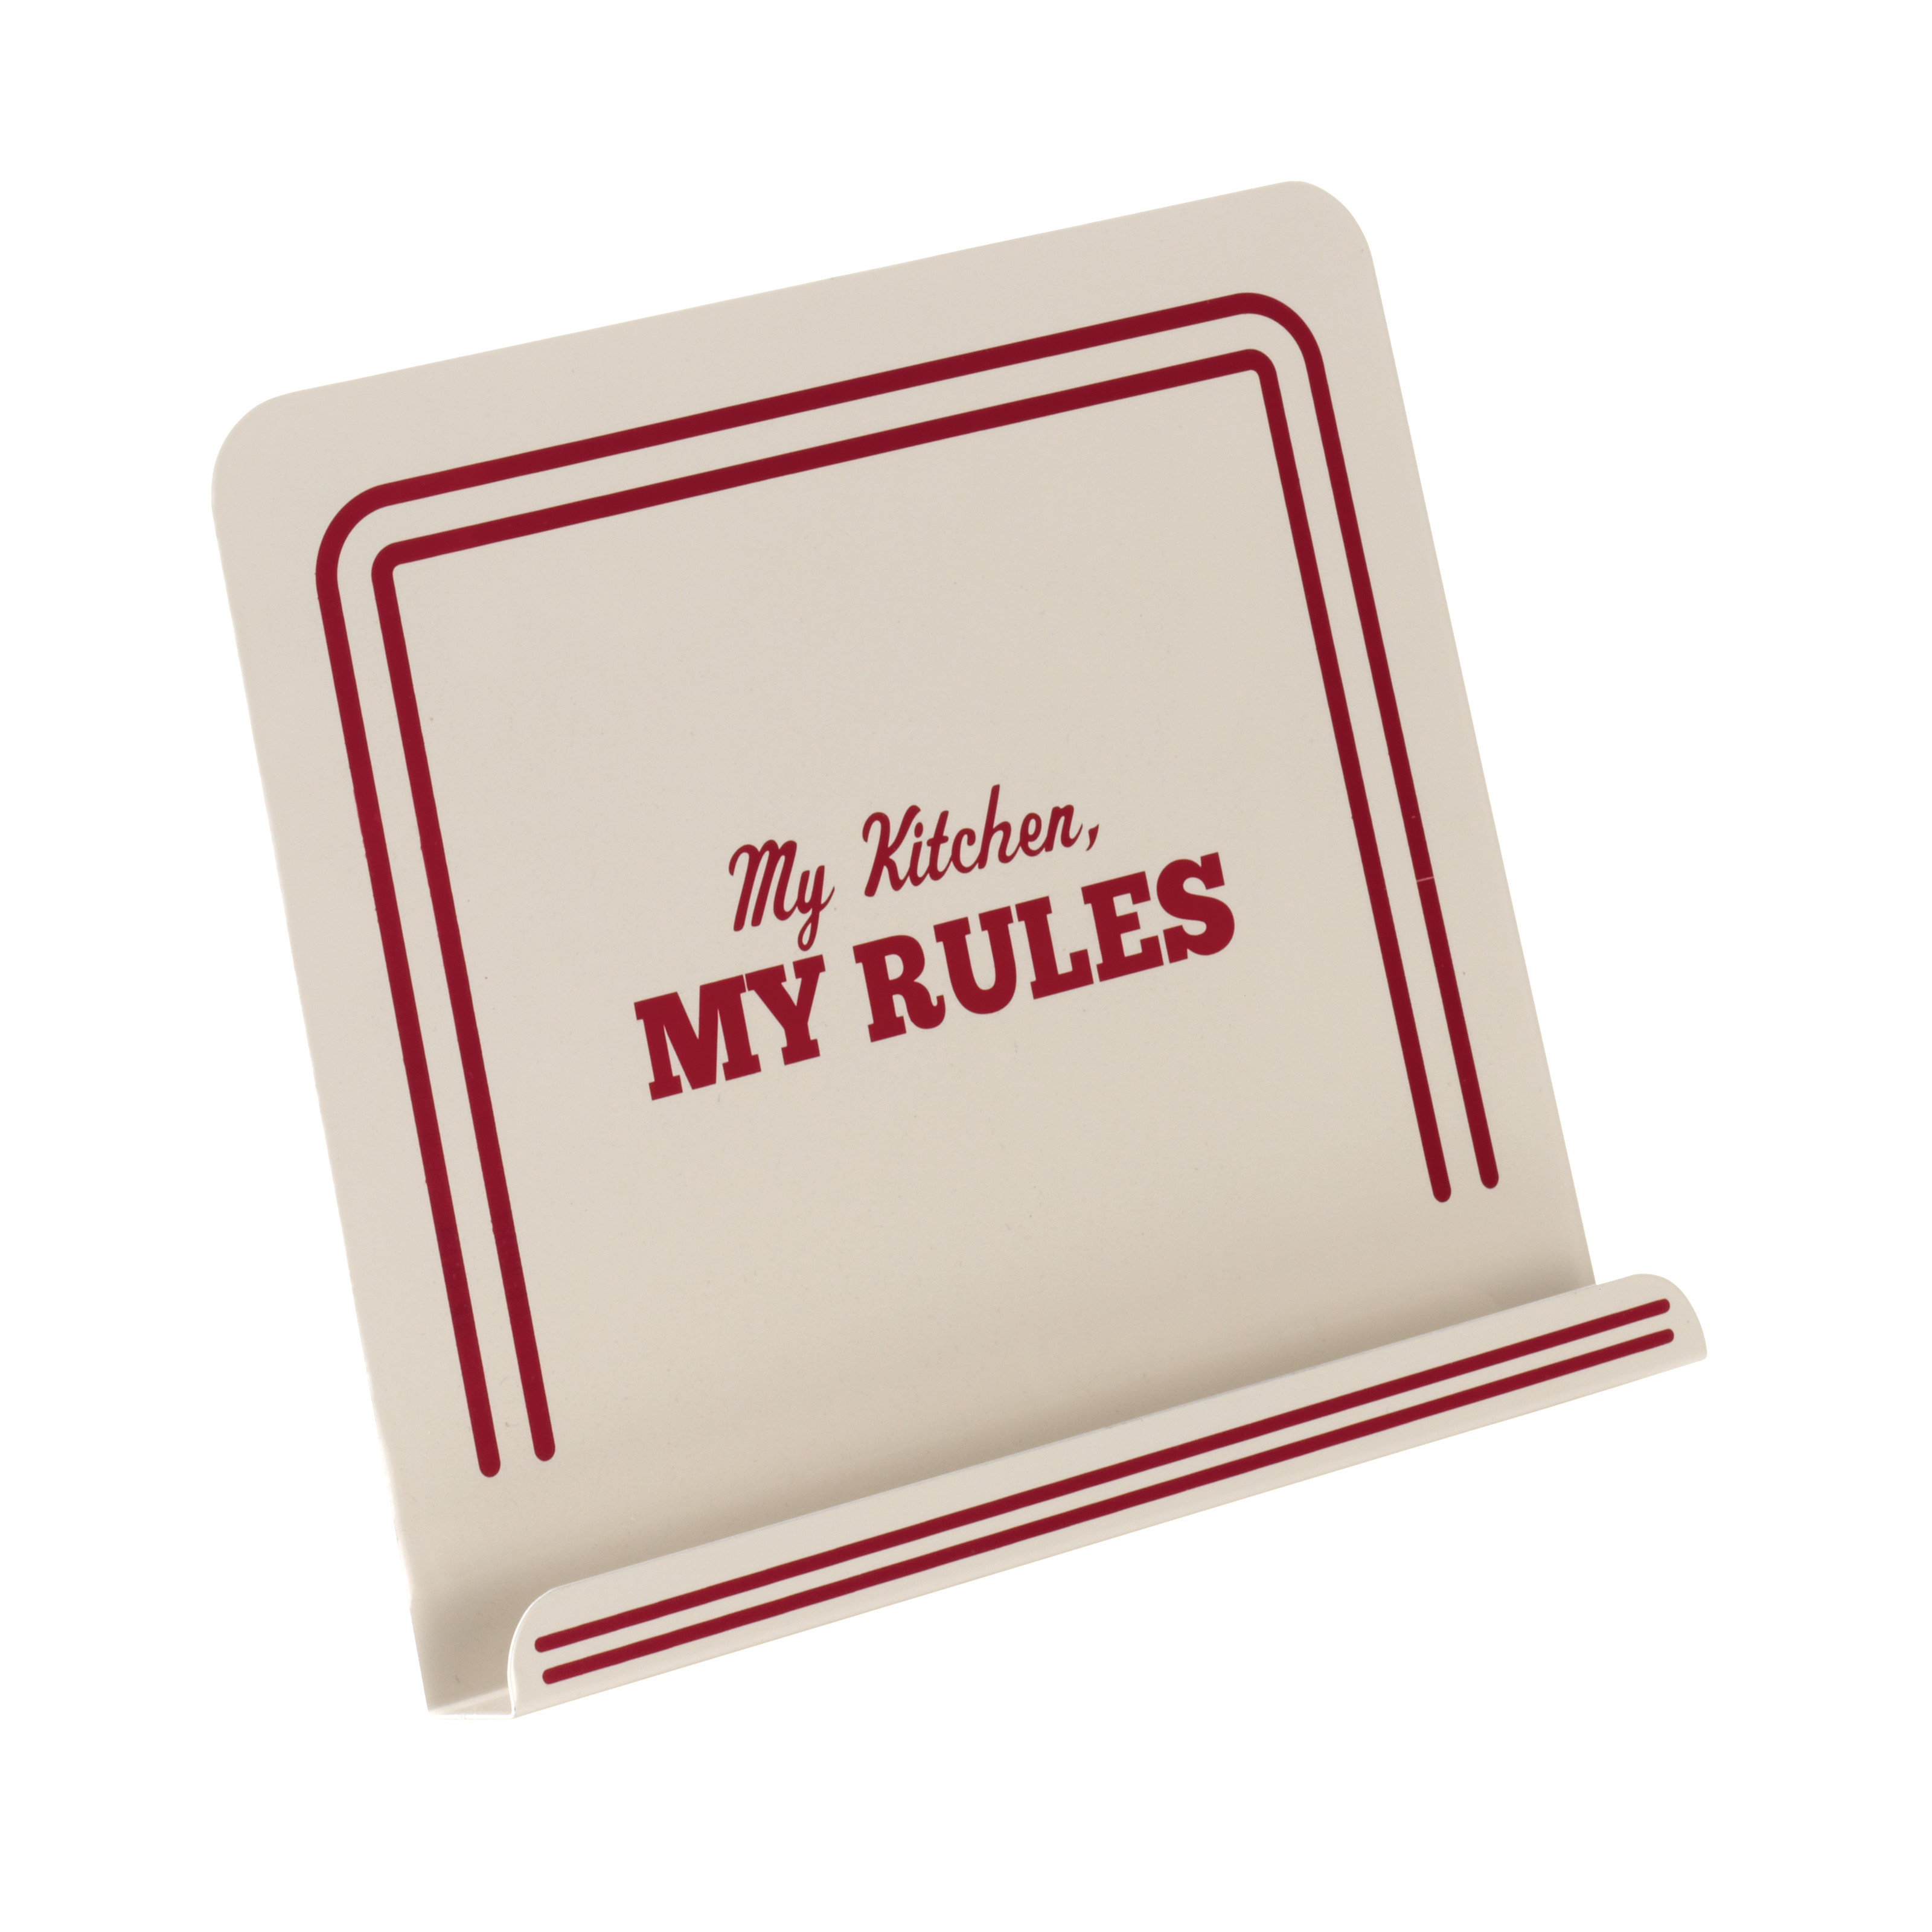 Cake Boss Countertop Accessories Cookbook Stand, My Kitchen, My Rules